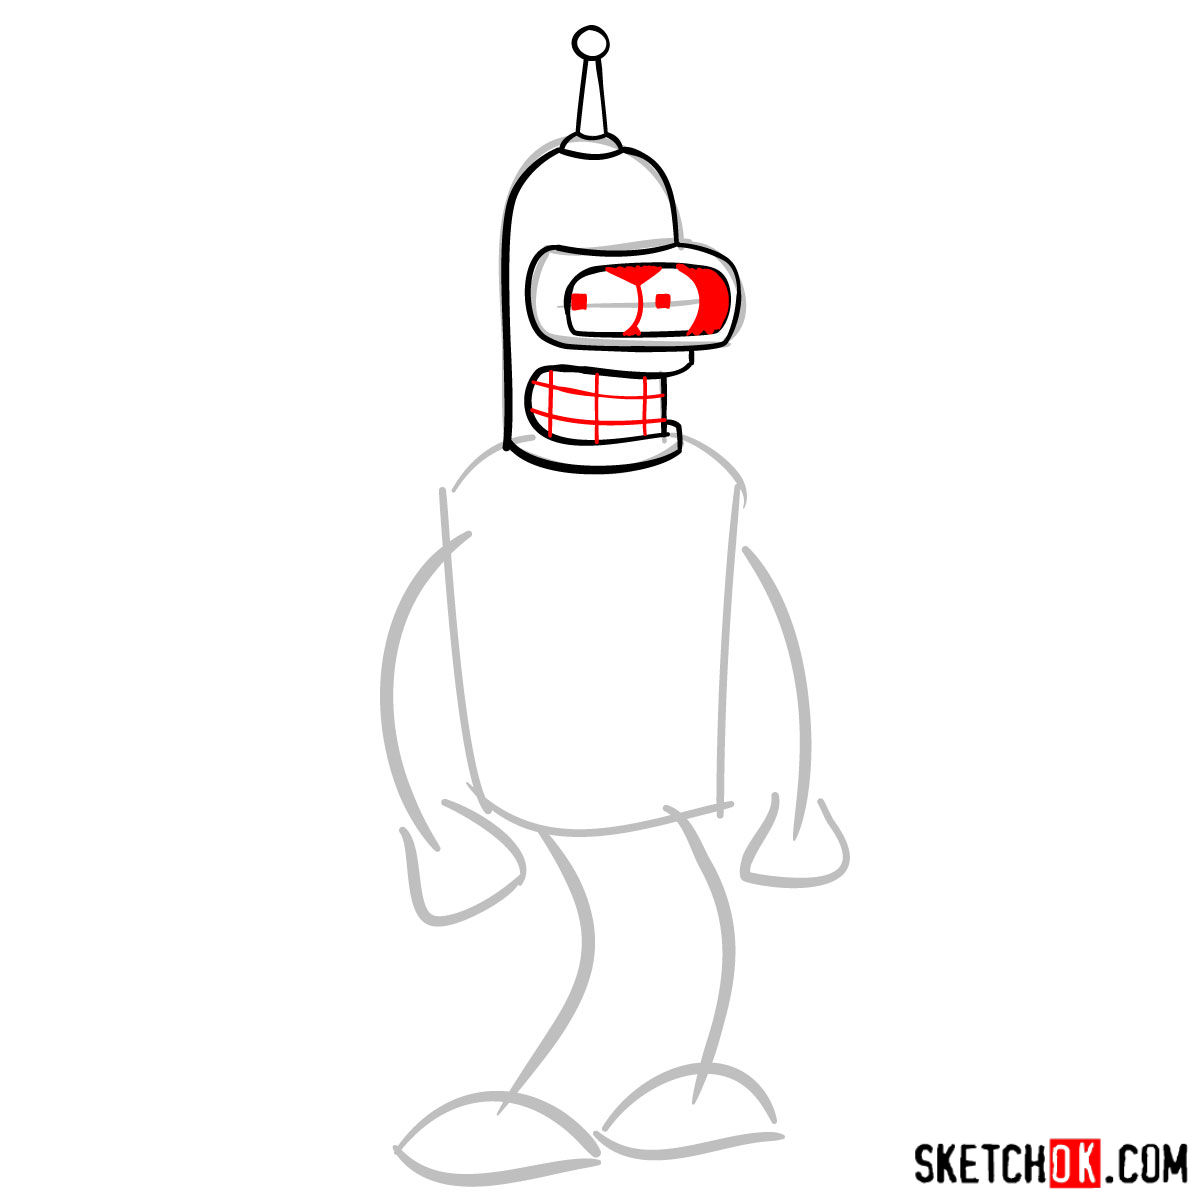 How to draw Bender Rodríguez - step 04